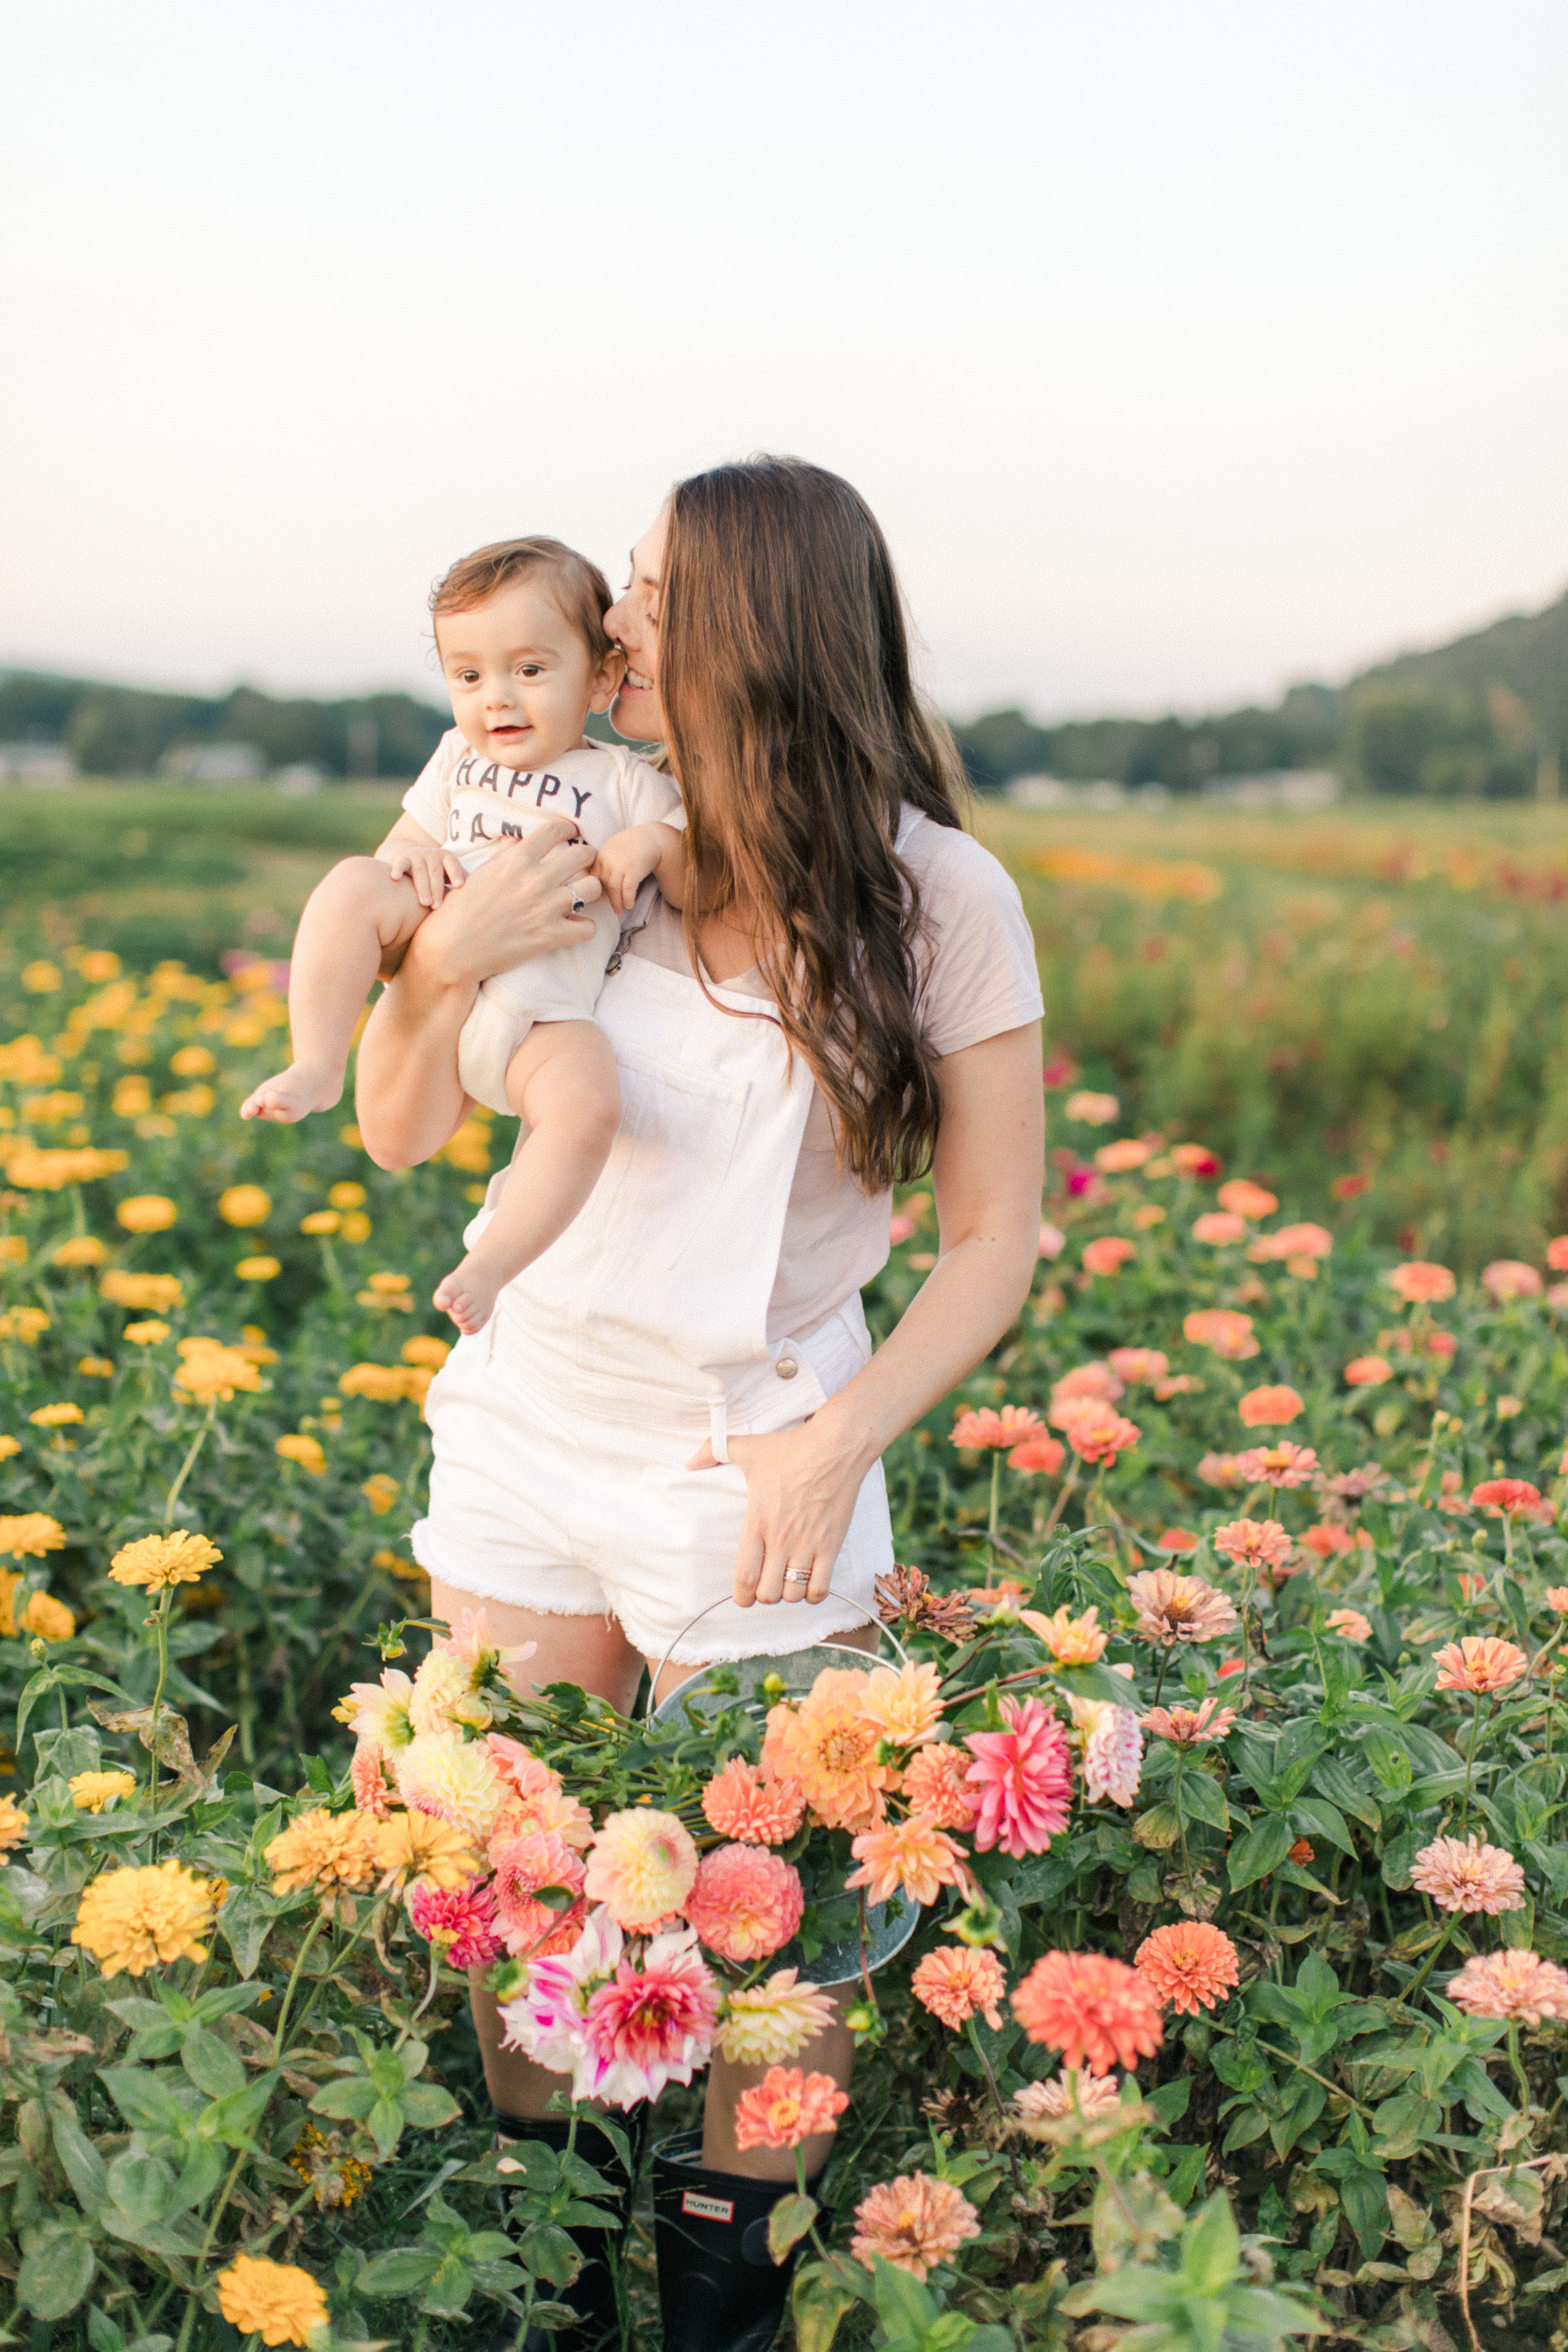 My Motherhood story continues at the Flower Farm. Here's why you should be doing my motherhood story too, an experience for you a book for your child